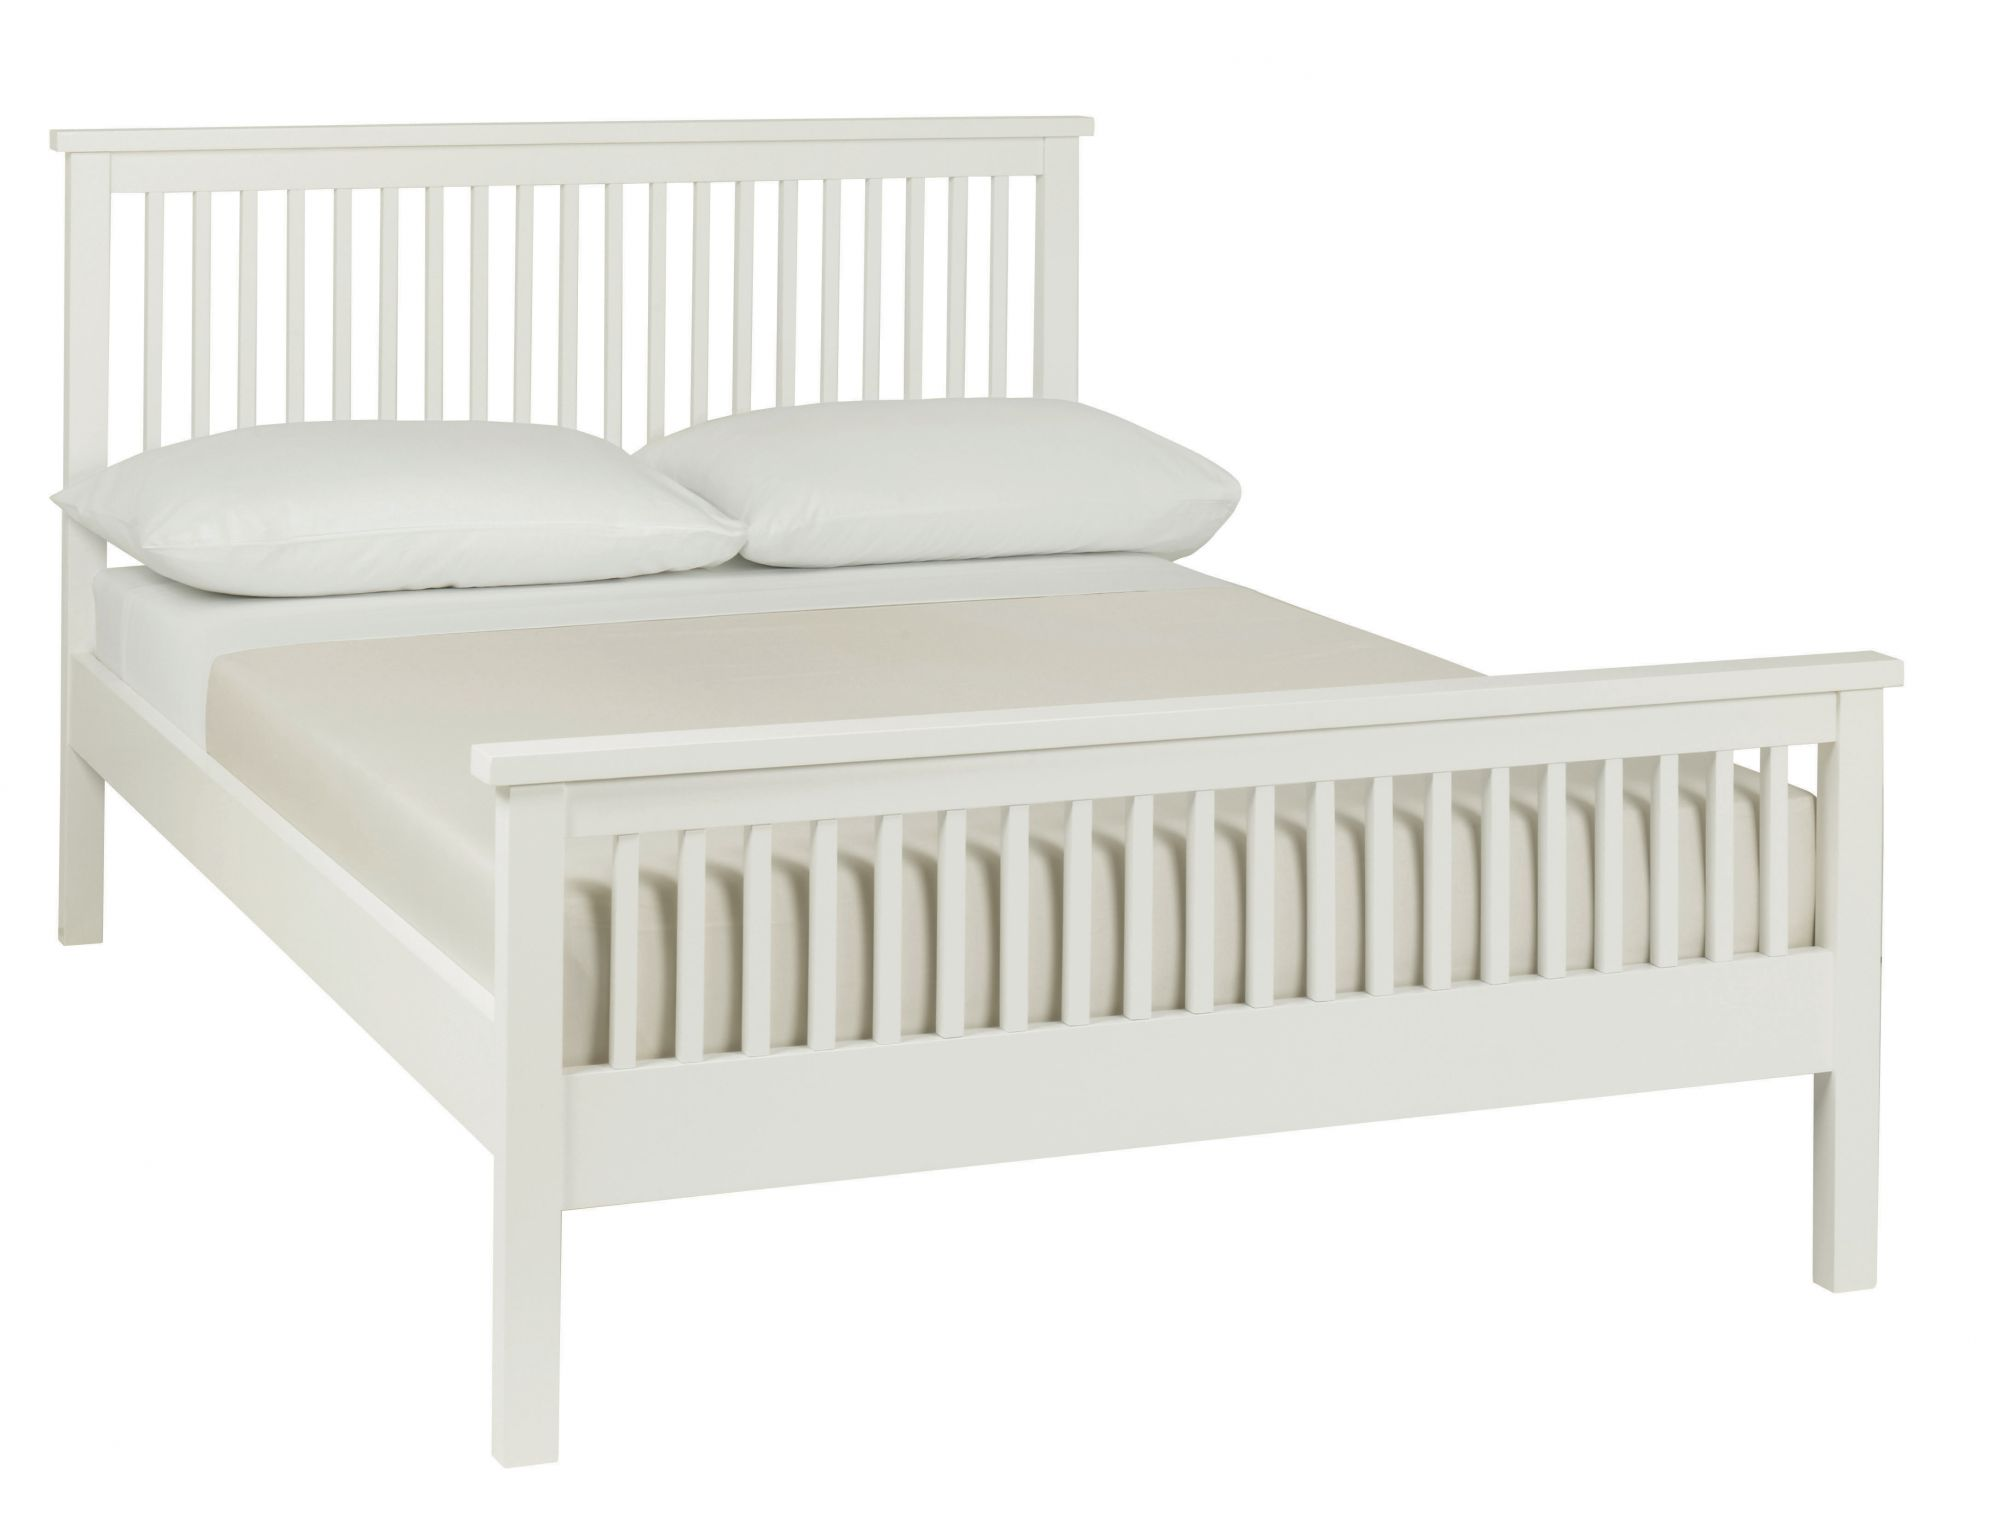 Atlanta White High Footend King Size Bed with Optional Storage